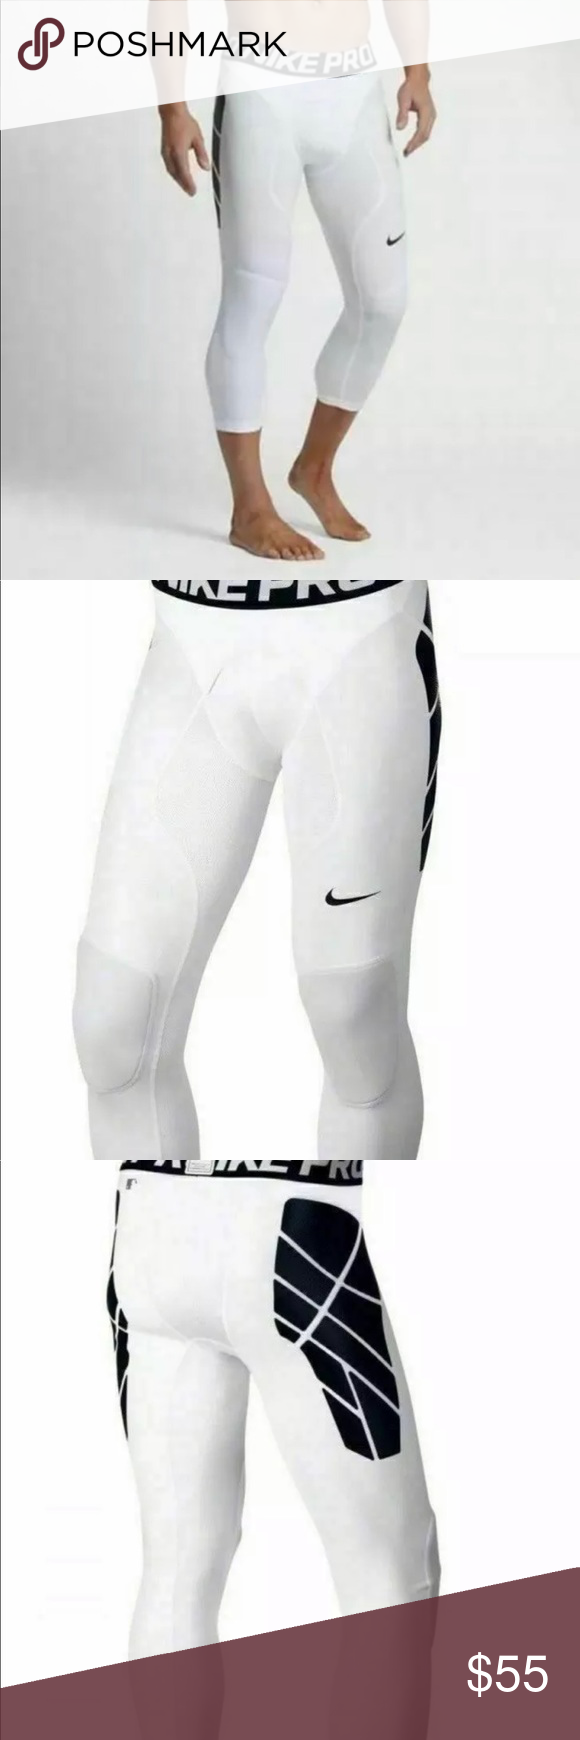 97786f6c09299 Nike Pro HyperStrong Men's Baseball Slider Tights Nike Pro HyperStrong Men's  XXL Baseball Slider Tights White